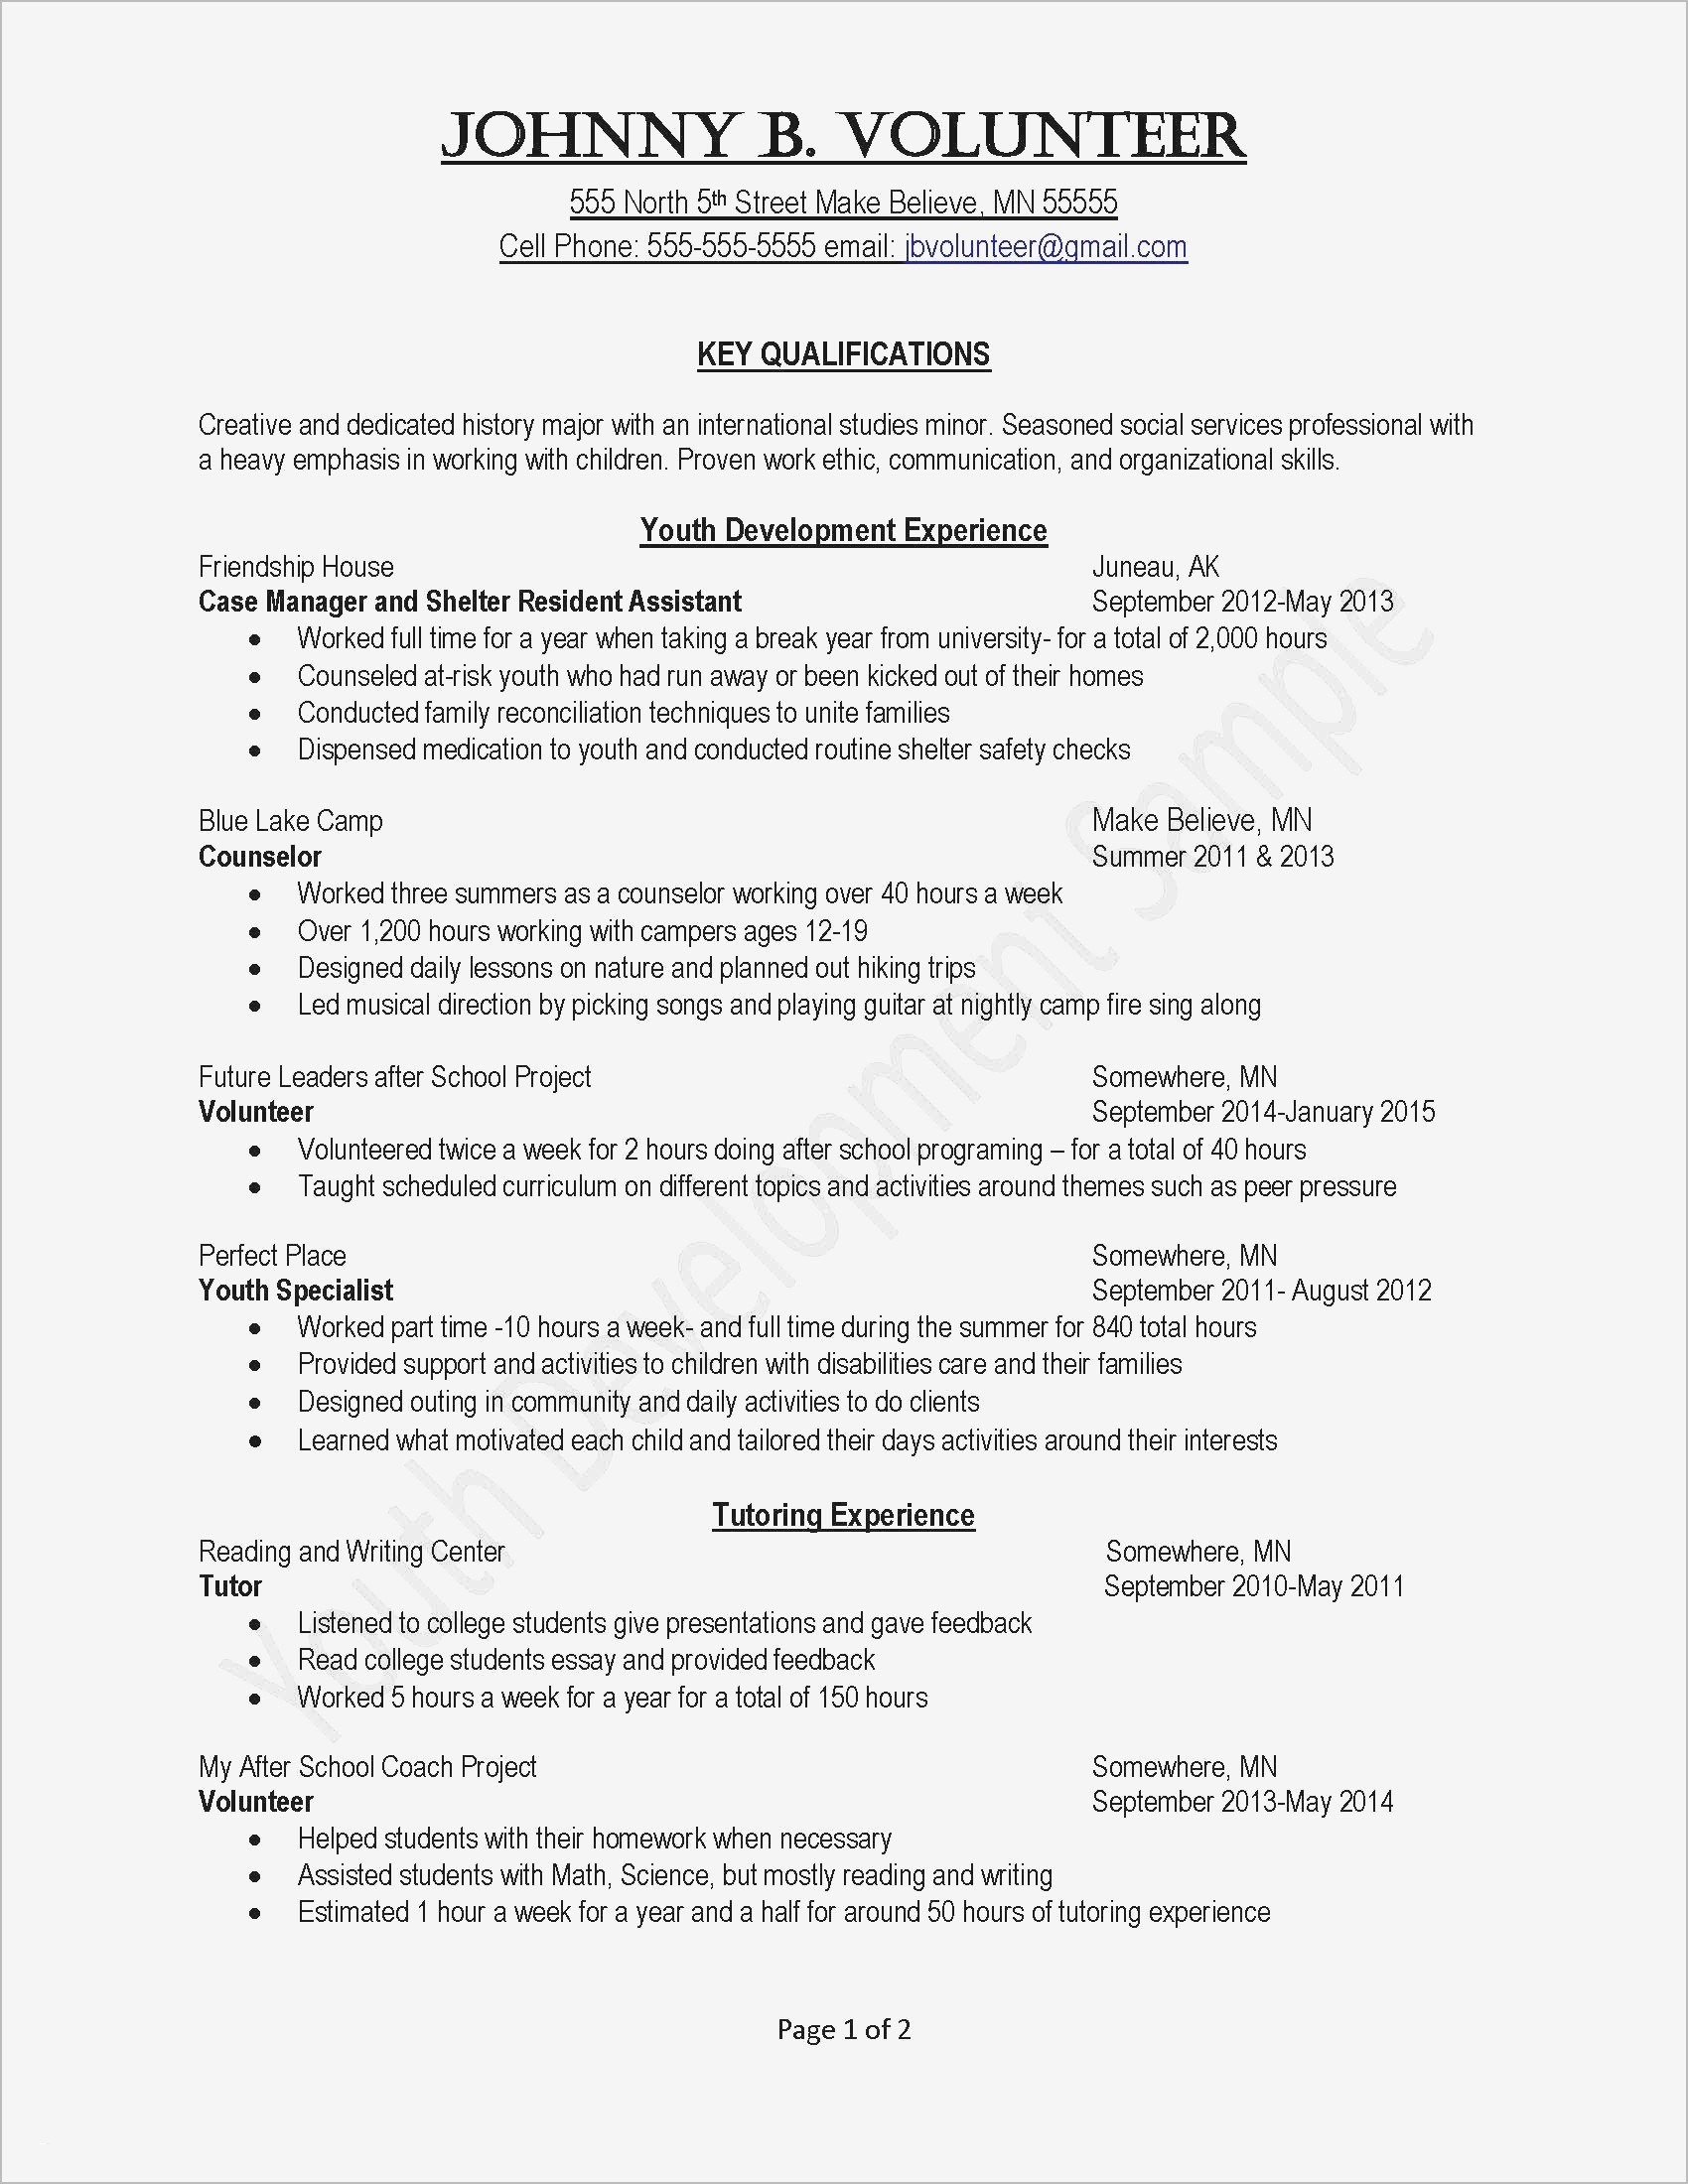 creative cover letter template example-Free Template for Resume Cover Letter Elegant Job Fer Letter Template Us Copy Od Consultant Cover Letter Fungram 6-a